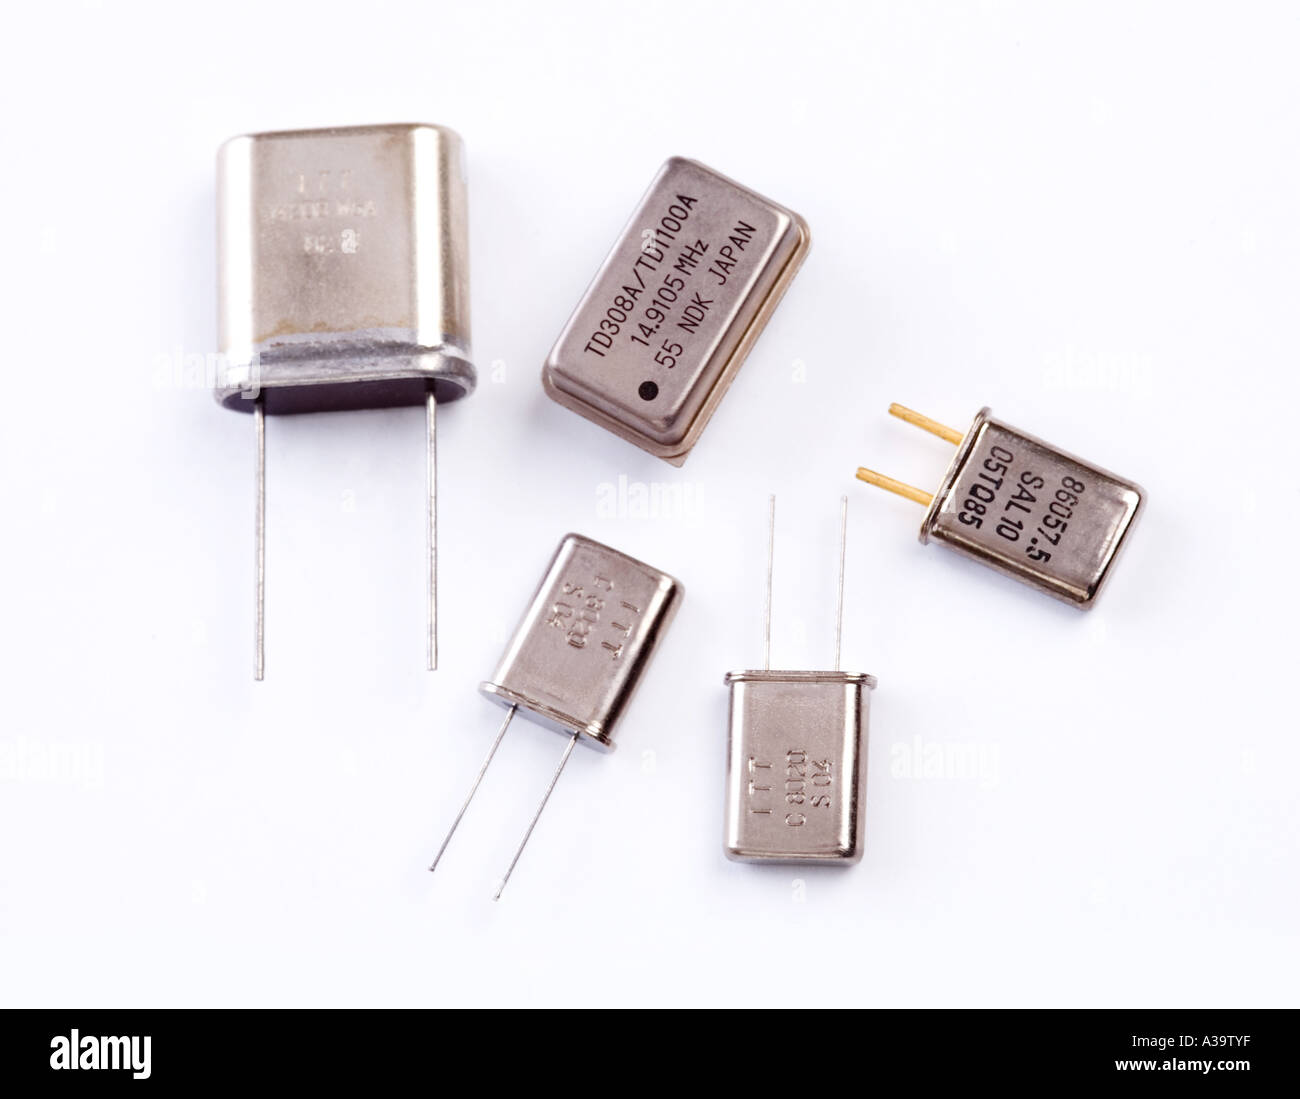 quartz crystals used to control frequency - Stock Image